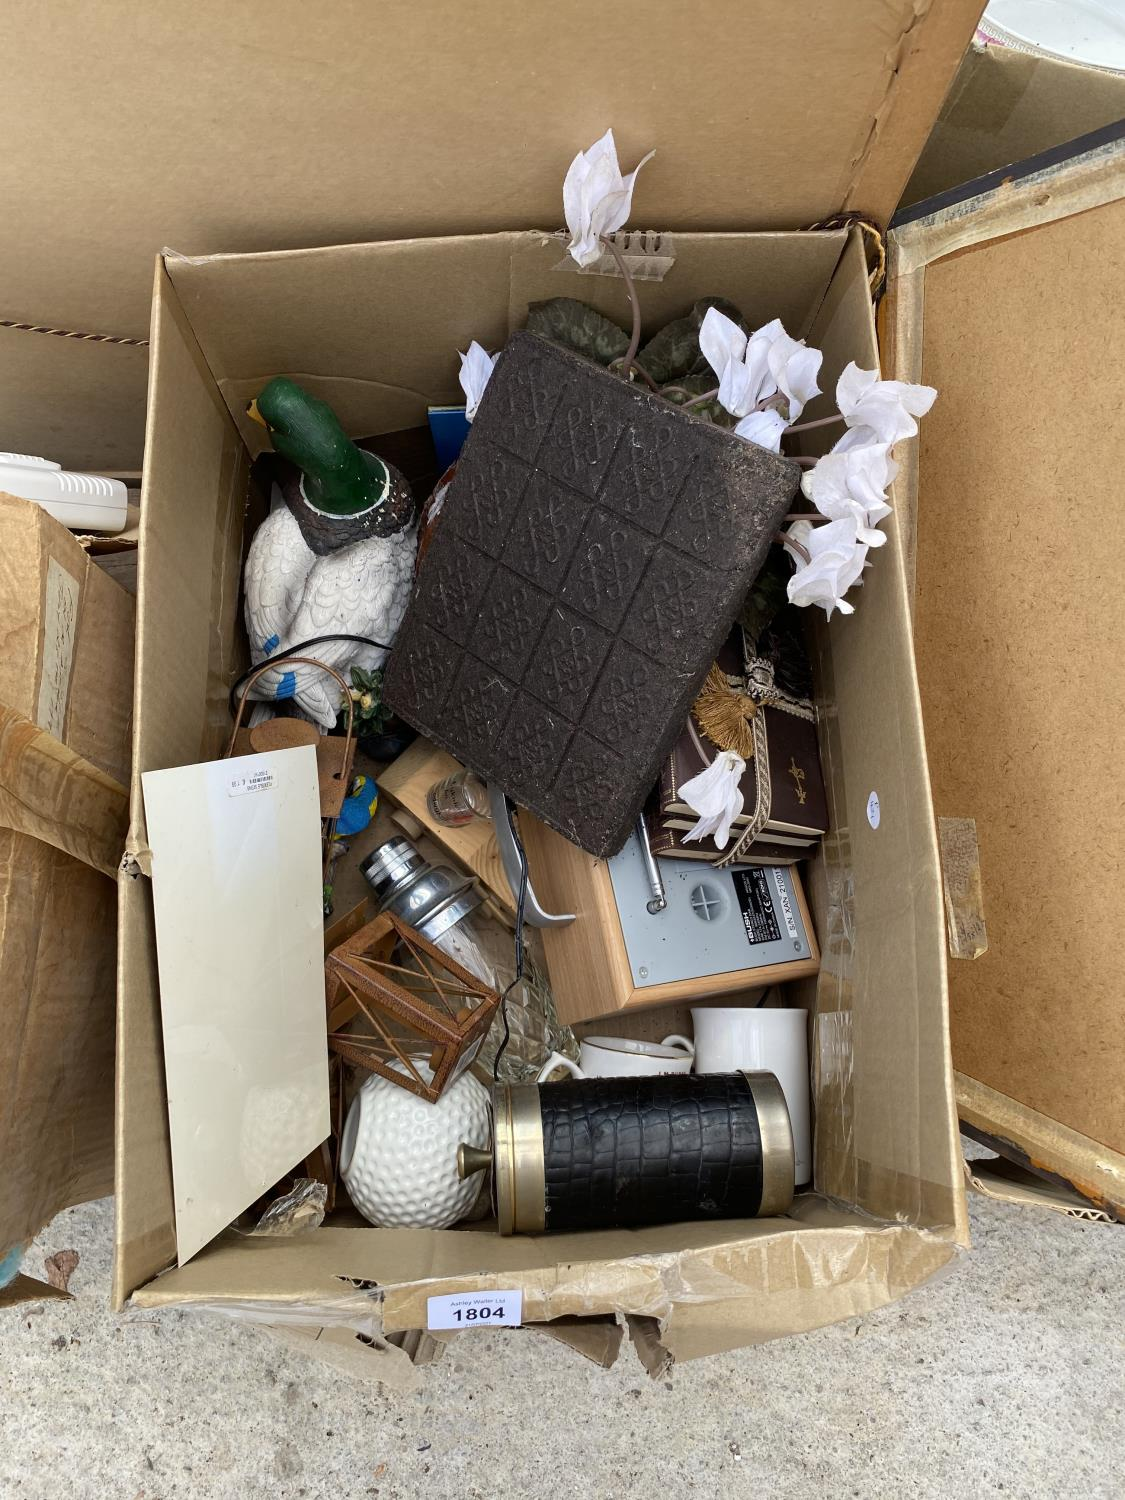 AN ASSORTMENT OF HOUSEHOLD CLEARANCE ITEMS TO INCLUDE LAMPS, A RADIO AND CERAMIC WARE ETC - Image 3 of 8